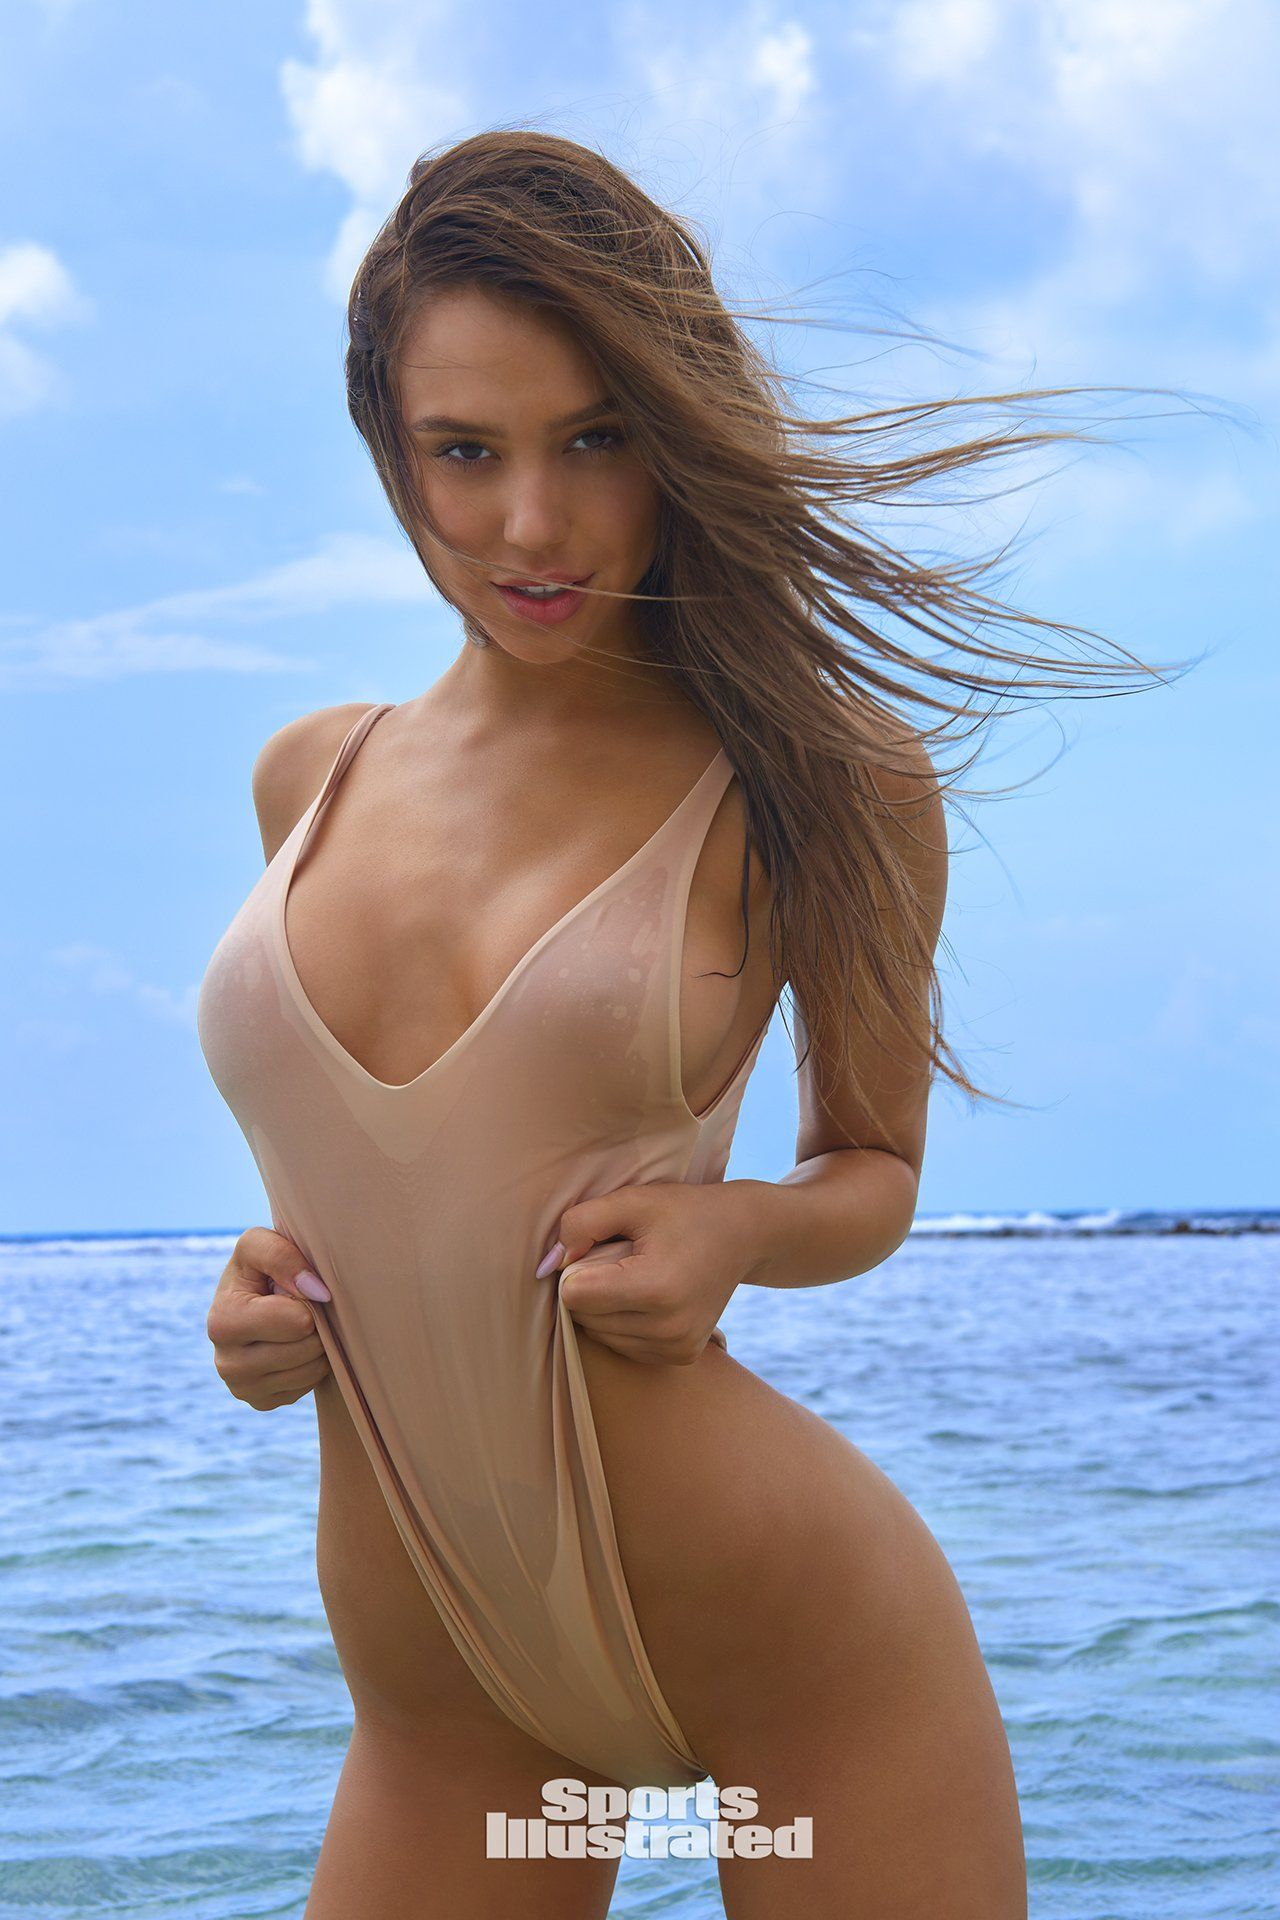 Rookie of the Year: Alexis Ren posiert in der Sports Illustrated Swimsuit Edition 2018 15